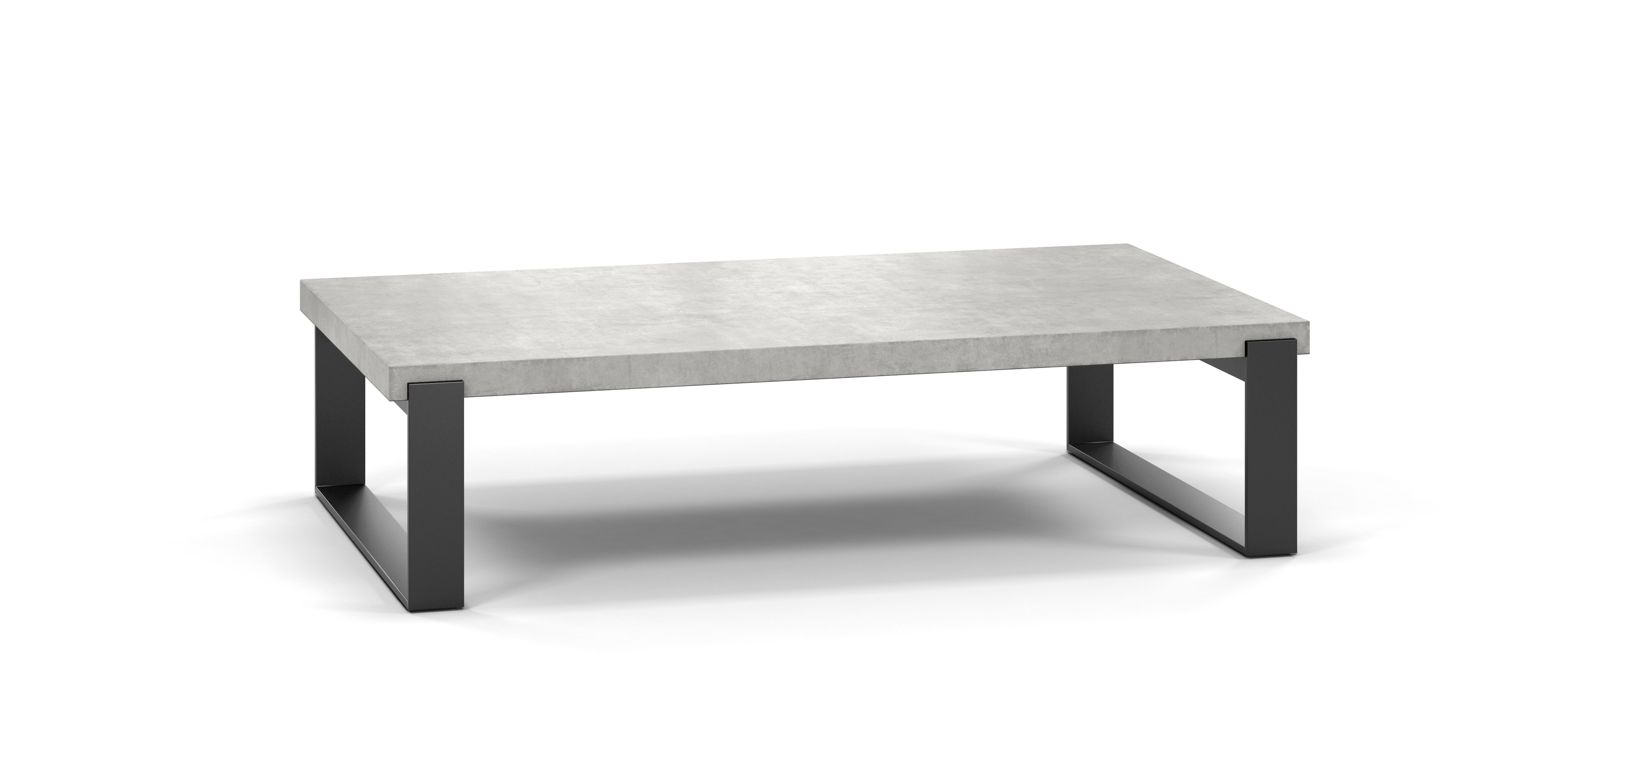 Optimum b ton cocktail table roche bobois - Table roche bobois prix ...